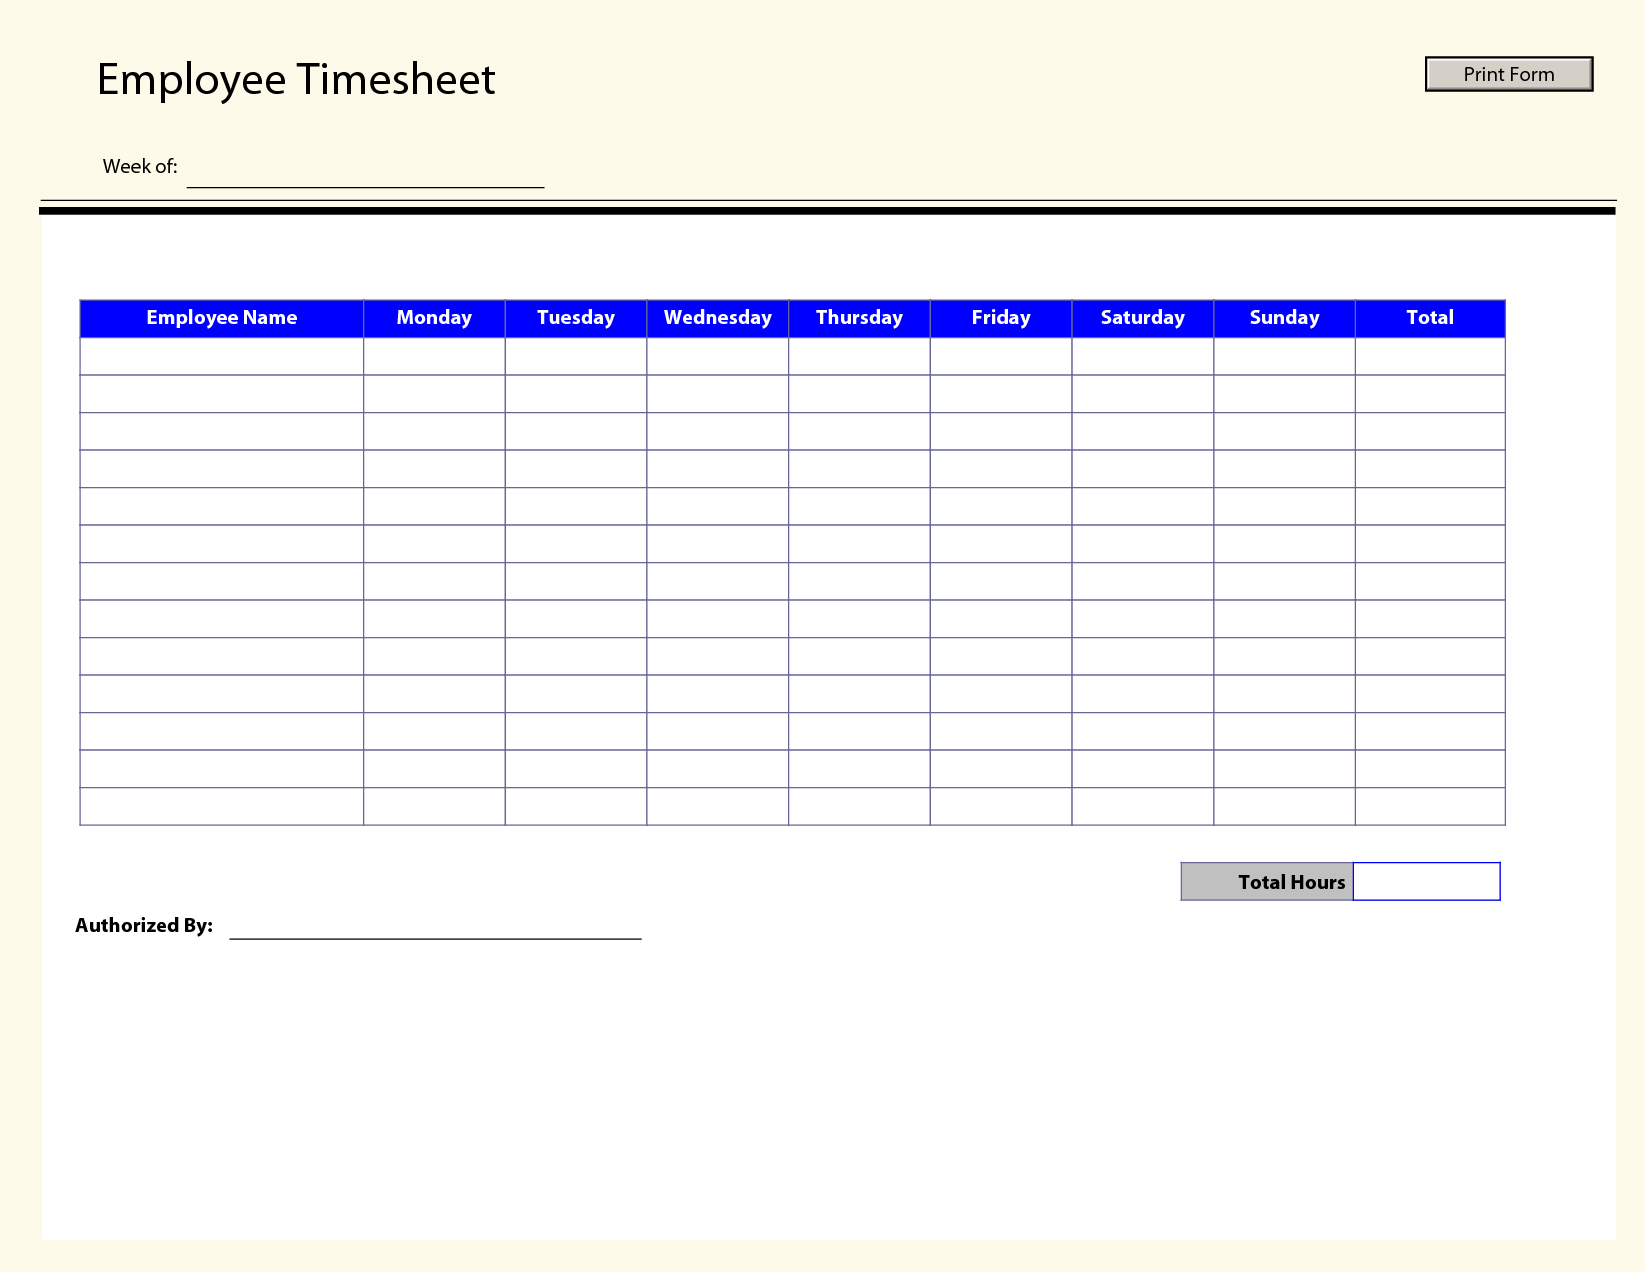 Excel Spreadsheet for Warehouse Inventory and Printable Time Sheets Free Printable Employee Timesheets